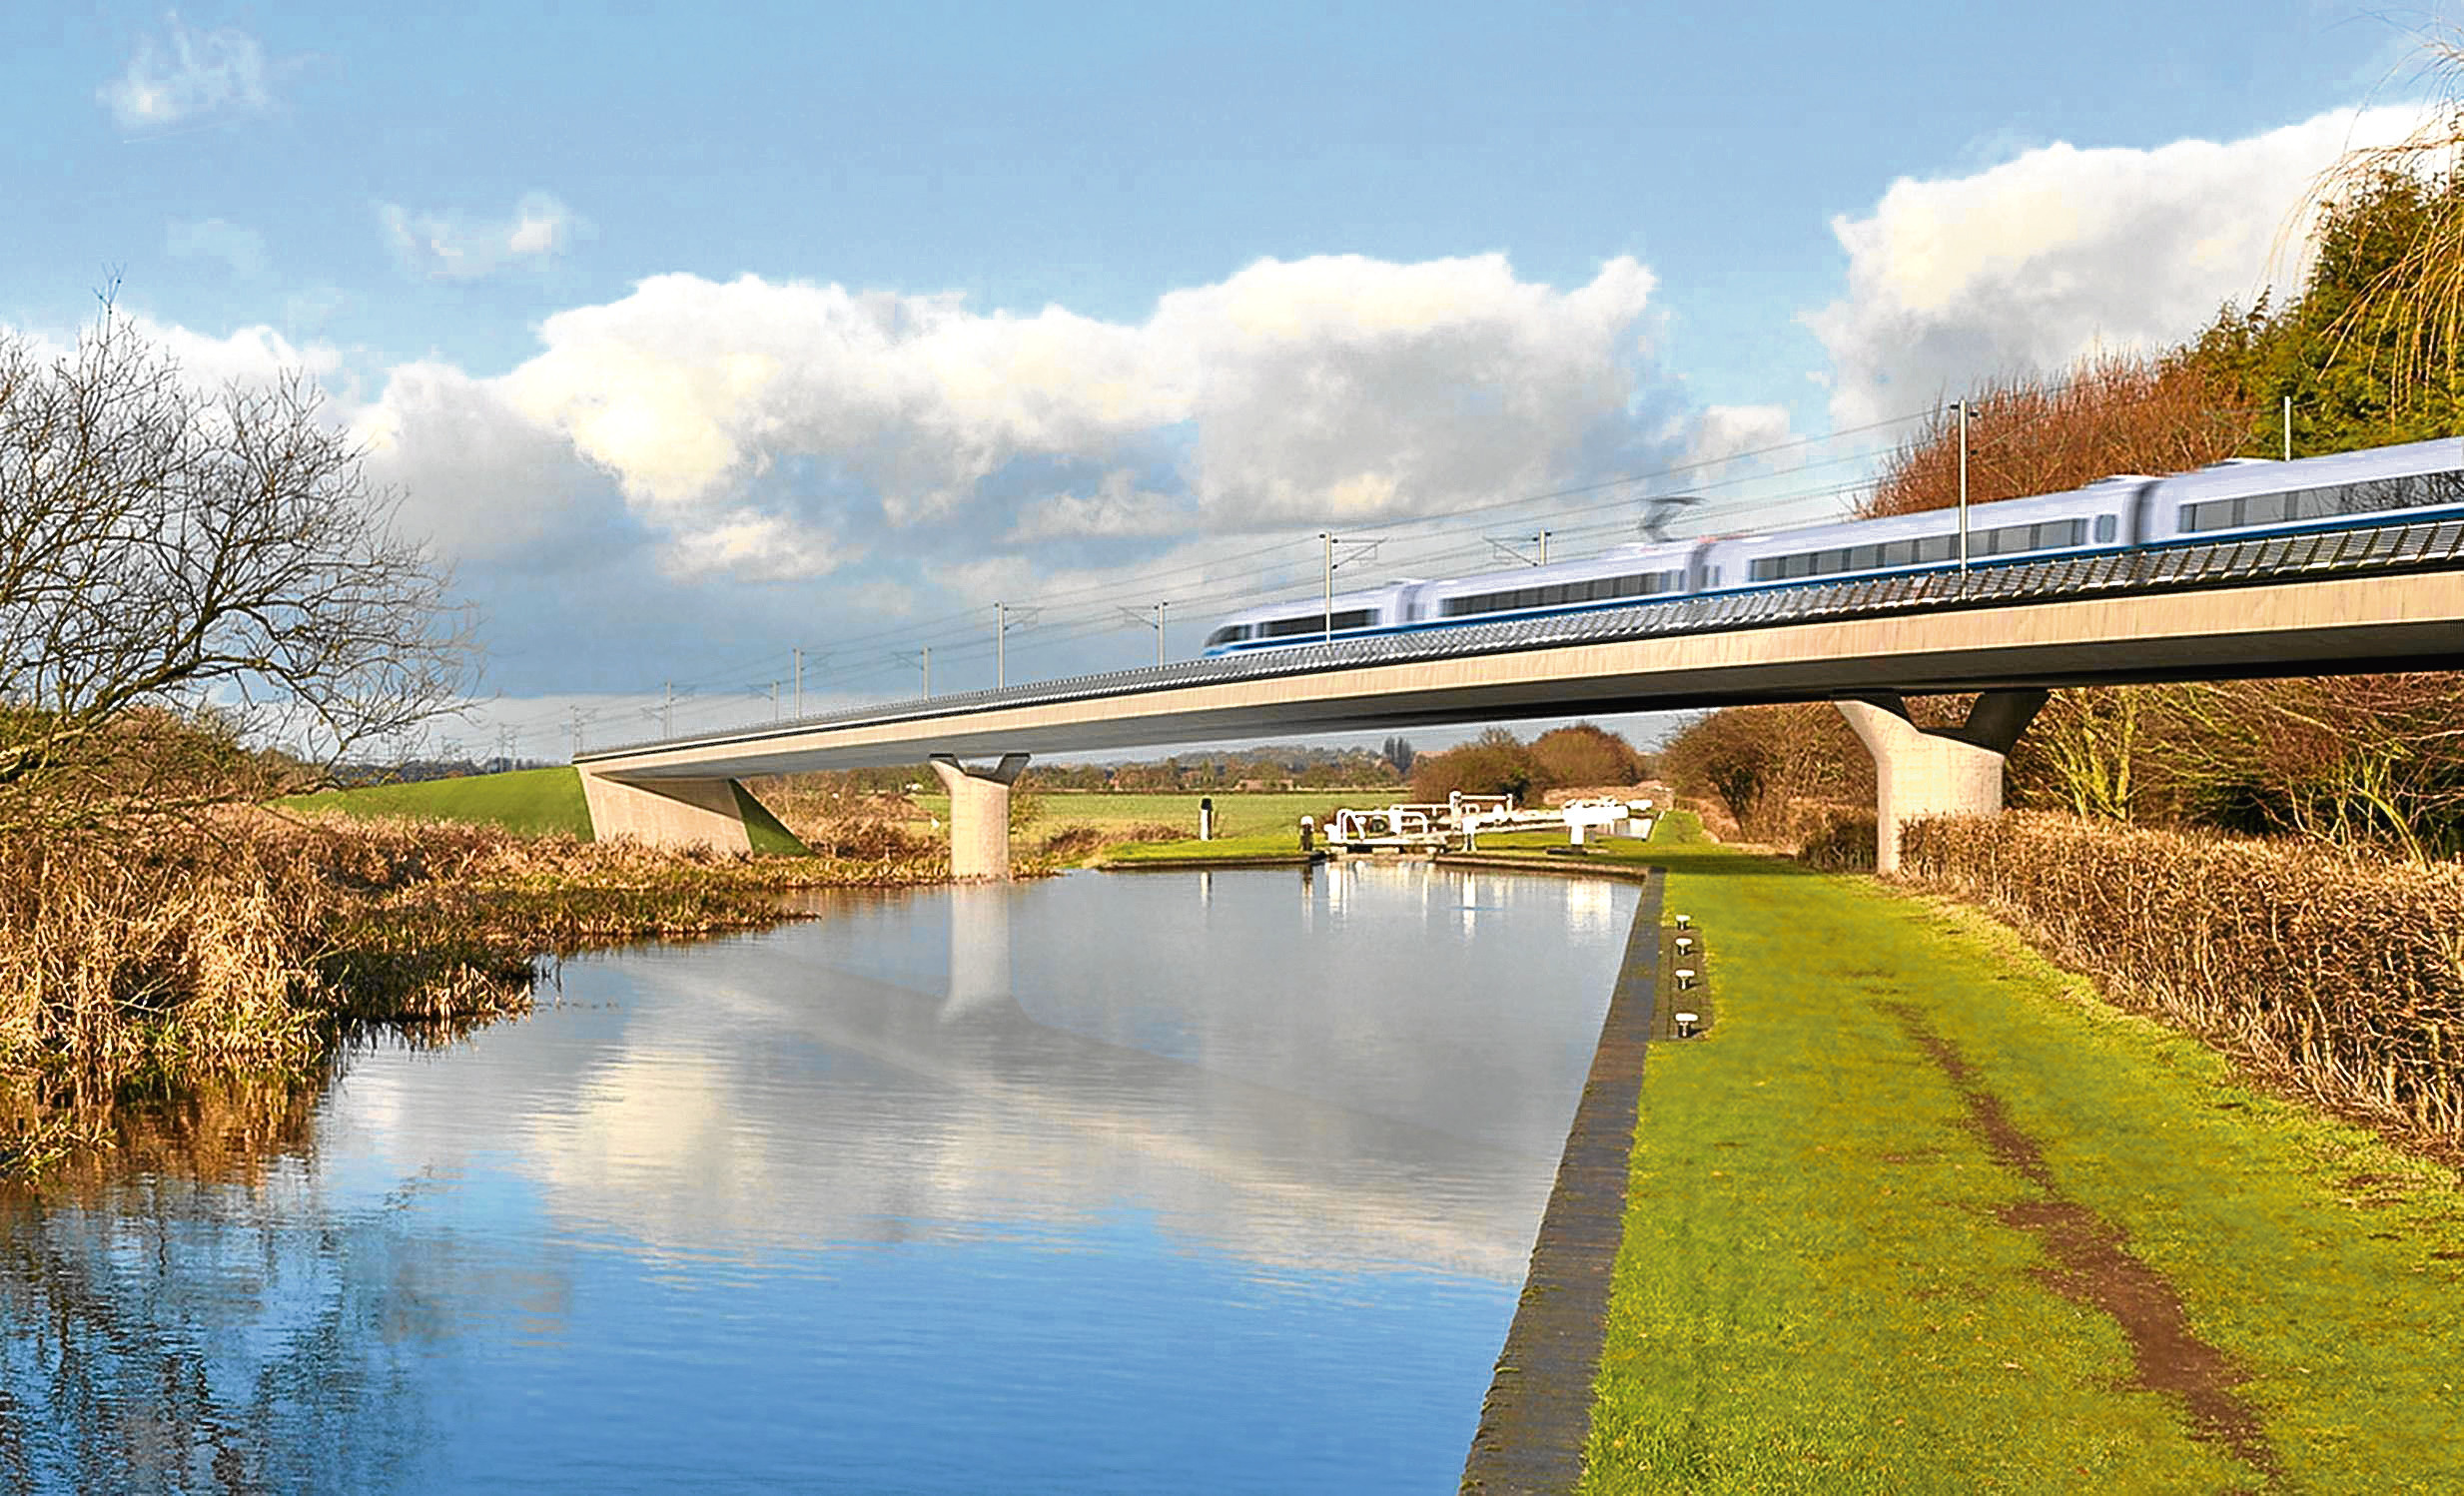 An impression of the HS2 line.